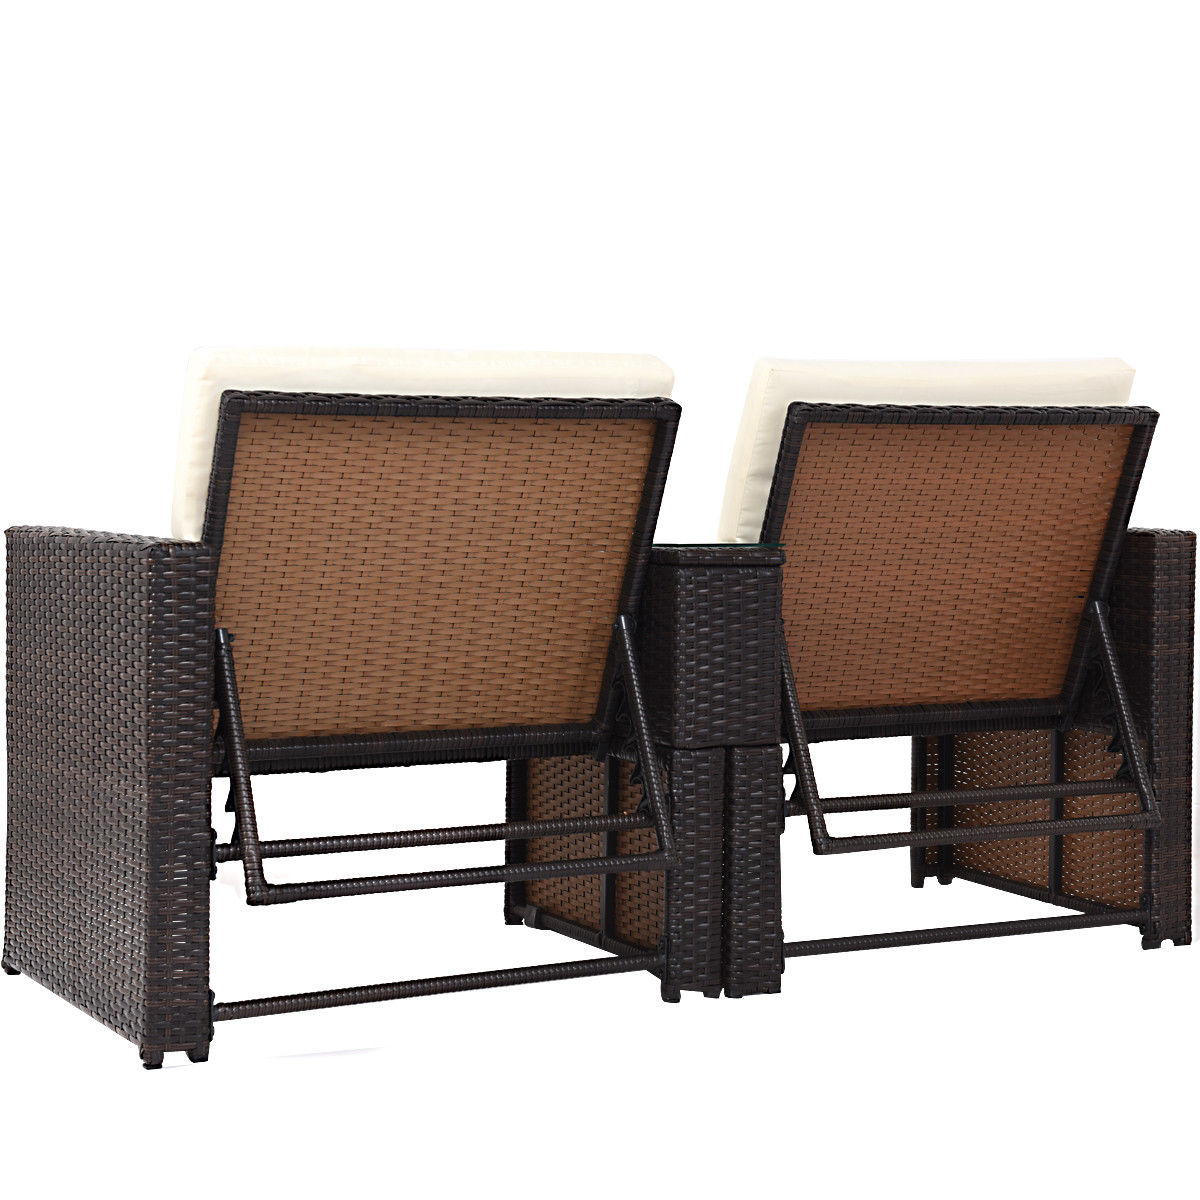 Gymax Outdoor 3 Piece Chaise Lounge Chair Set Rattan Wicker Patio Love Seat - image 1 ...  sc 1 st  Walmart Canada & Gymax Outdoor 3 Piece Chaise Lounge Chair Set Rattan Wicker Patio ...